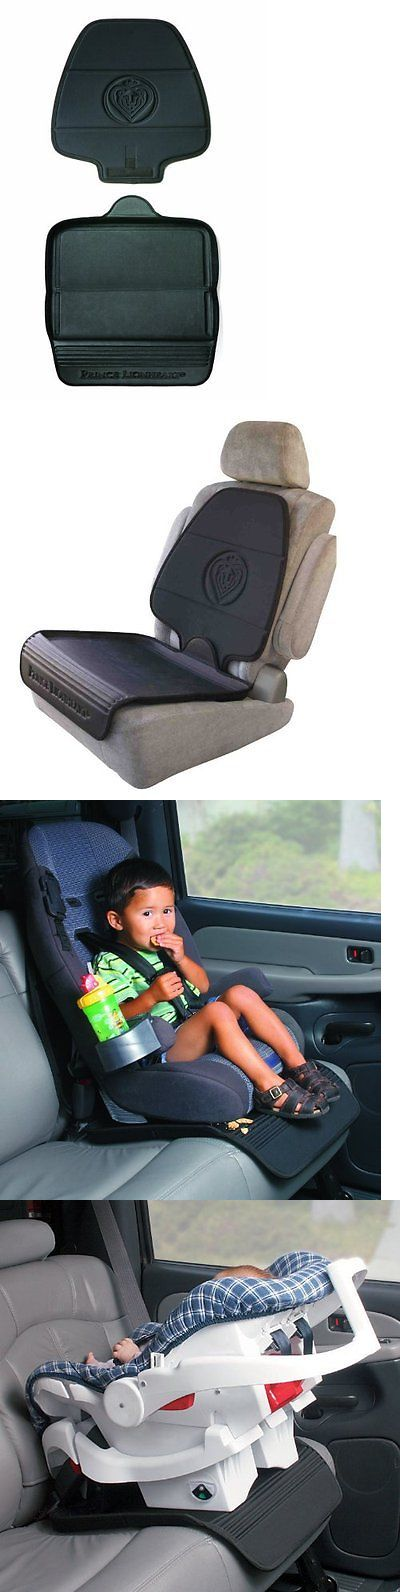 Car Seat Accessories 66693: Heavy Duty Car Seat Protector Saver Auto Mat Child Baby Safety Non Slip Vehicle -> BUY IT NOW ONLY: $31.05 on eBay!